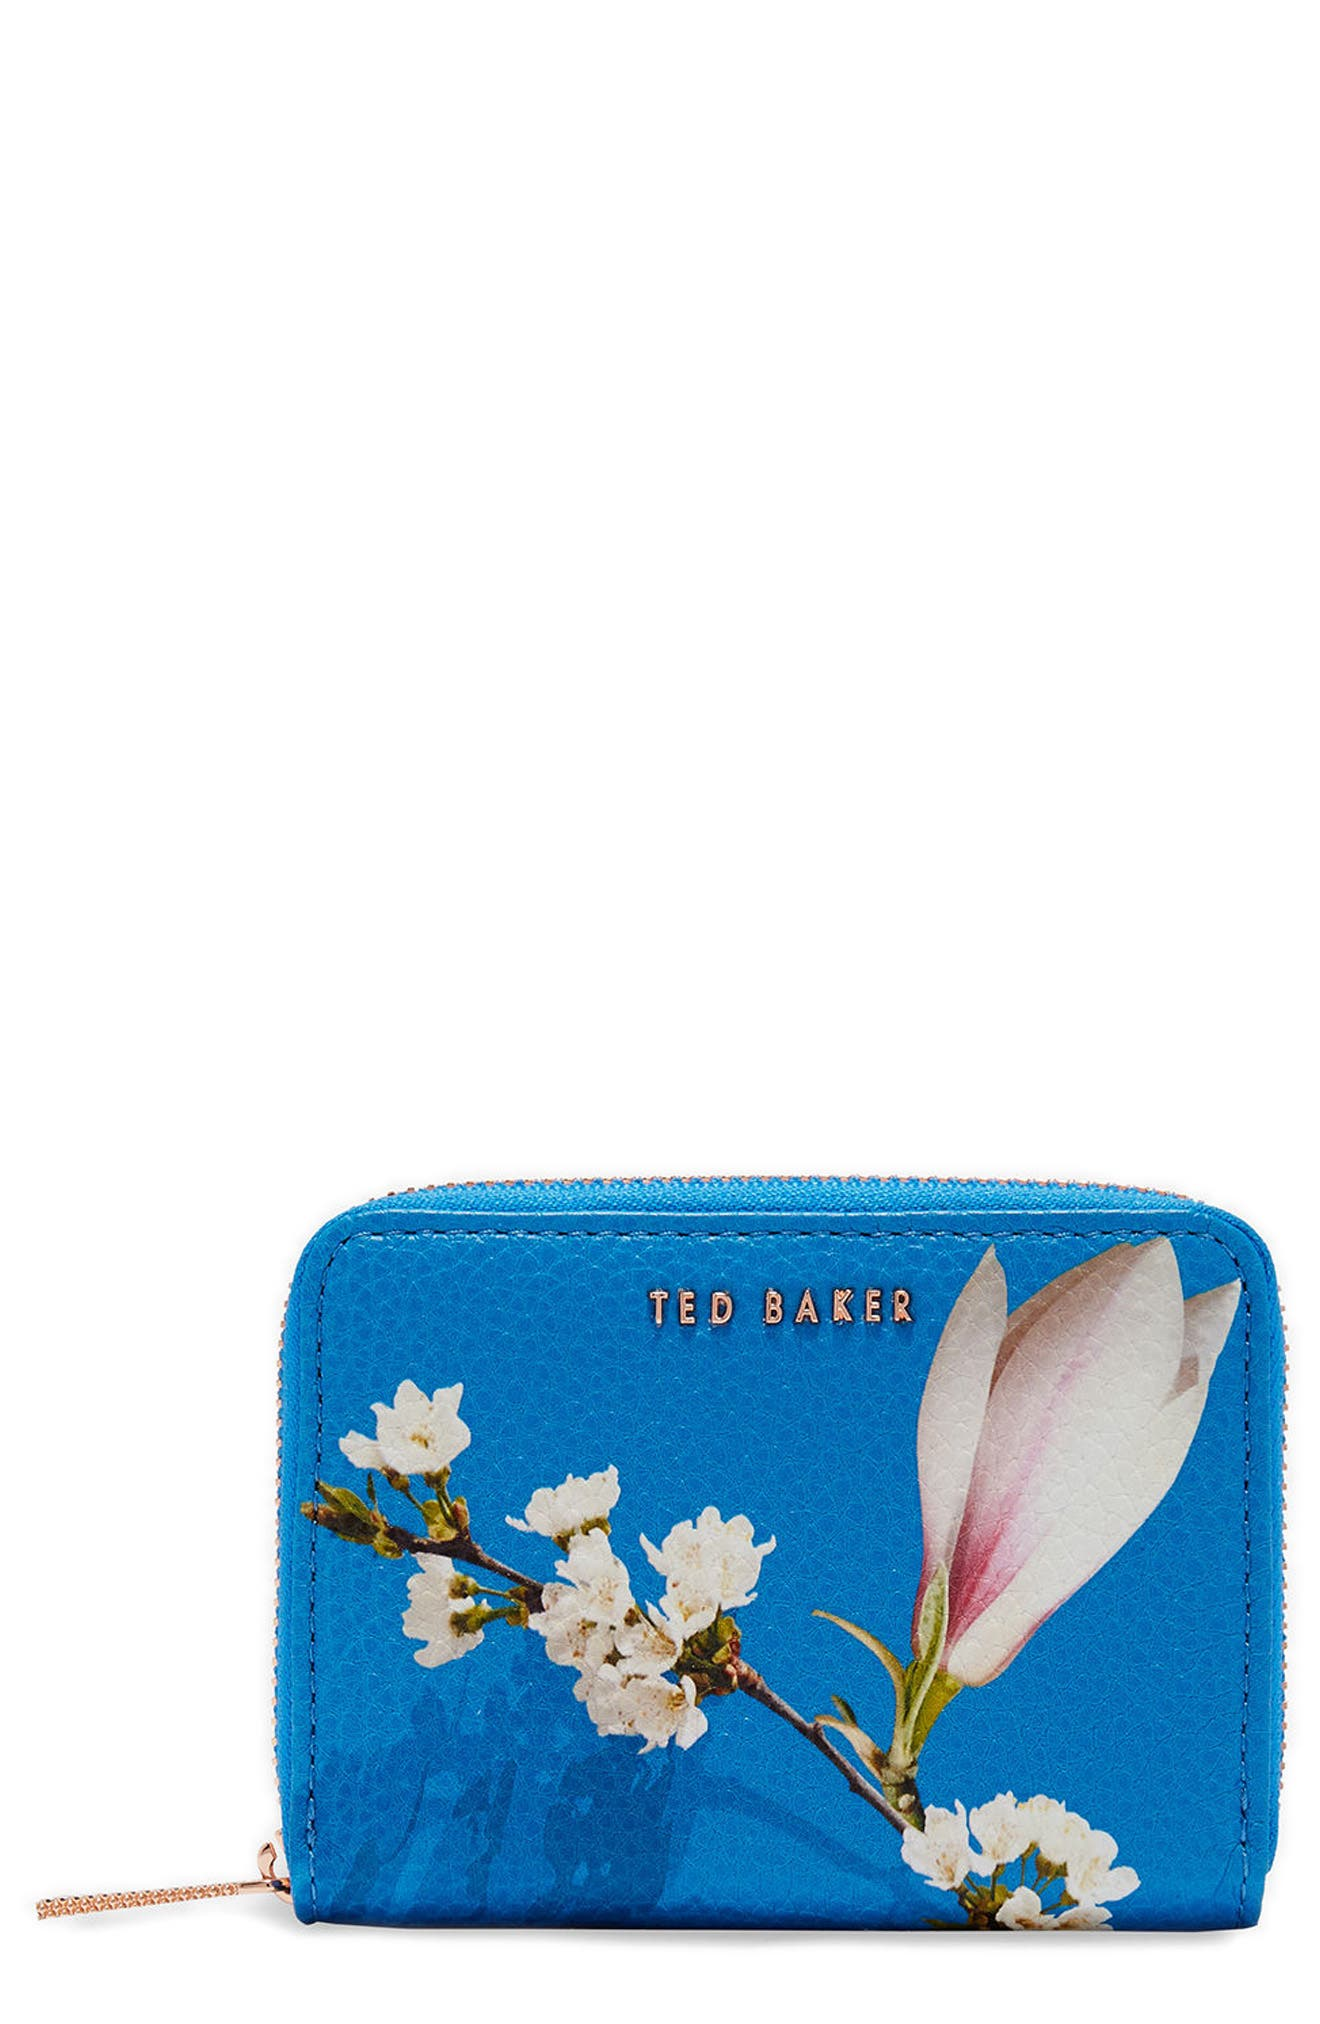 Corri Harmony Print Leather Zip Coin Purse,                             Main thumbnail 1, color,